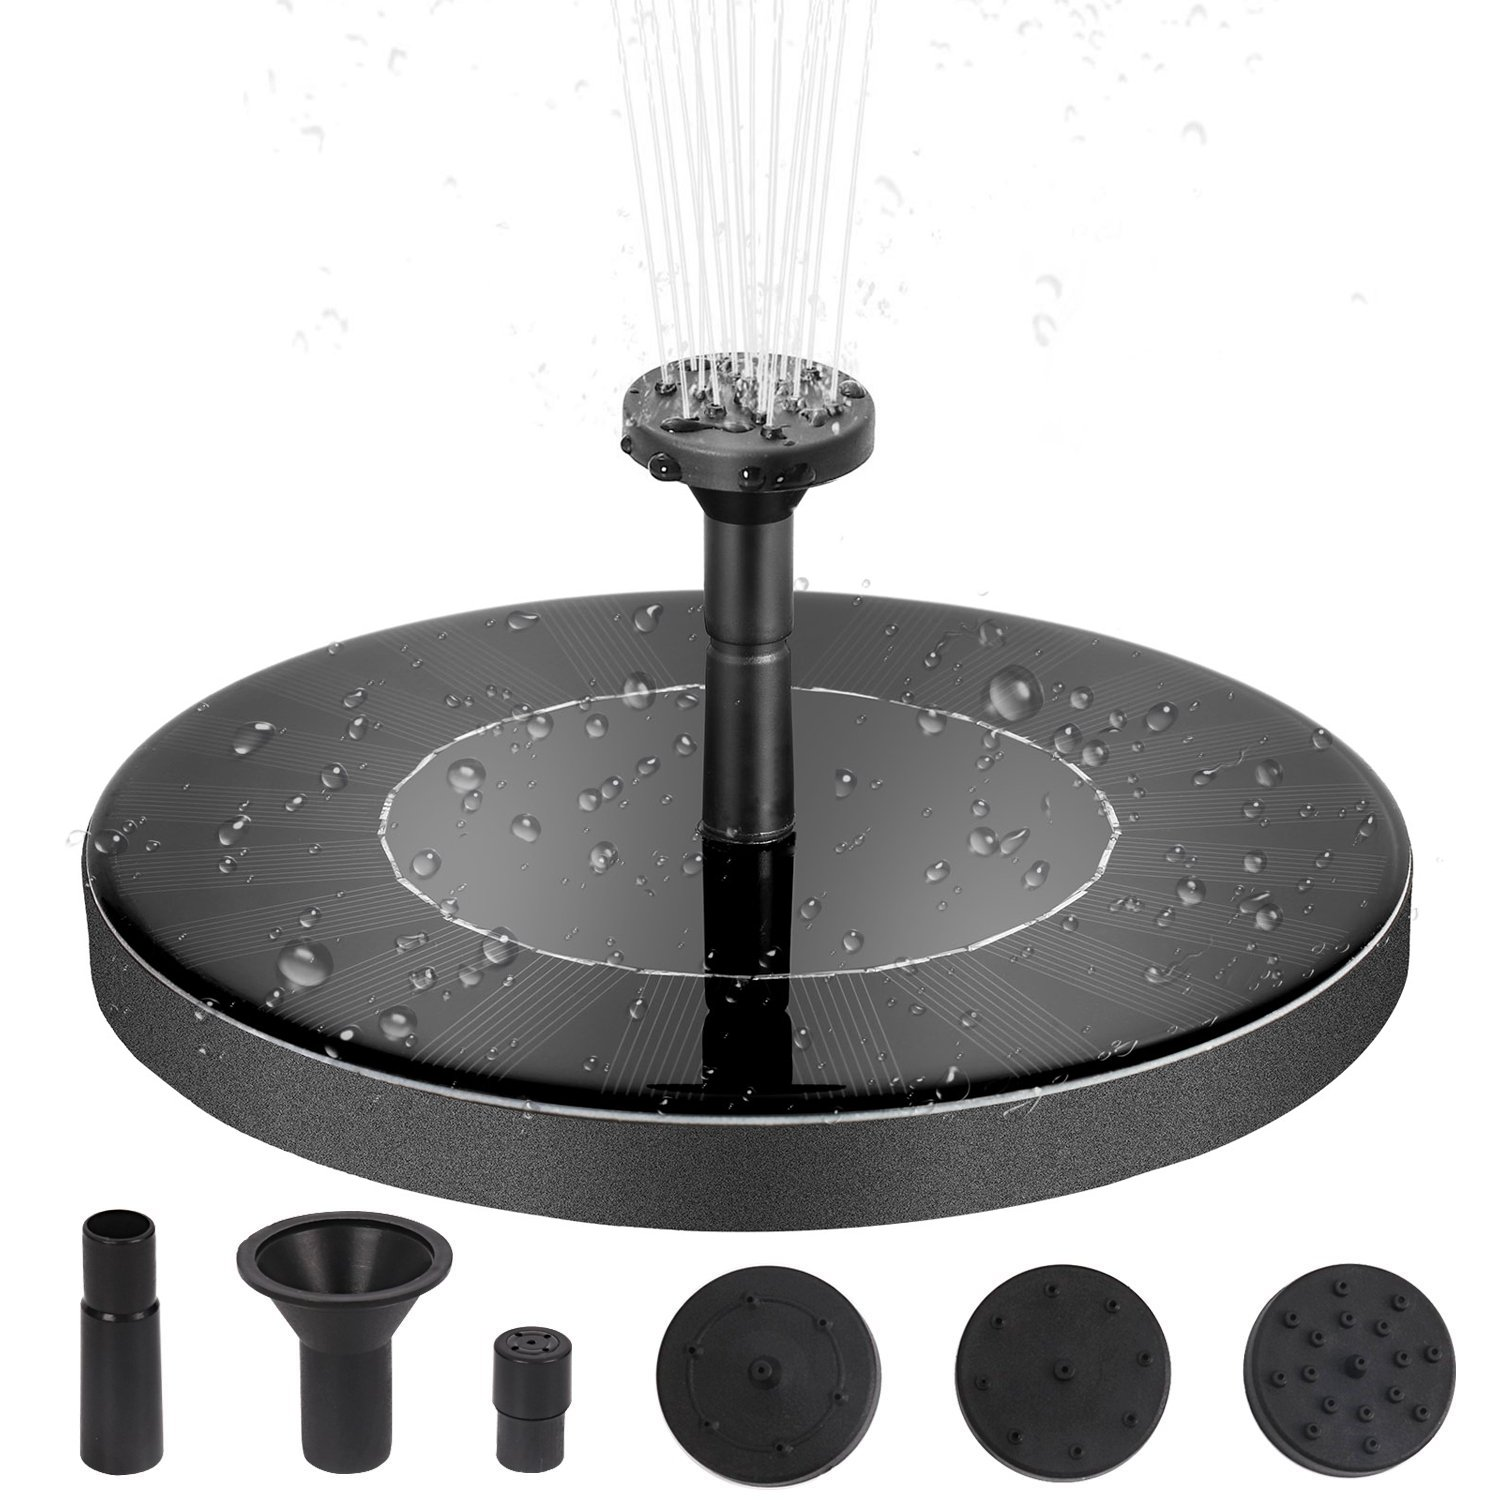 Solar Powered Fountain Pump Built-in Battery, Upgraded Solar Power Bird Bath Free Standing Water Pump Panel Kit - Artificial Outdoor Fountain Watering Submersible Pump for Pond, Pool, Garden,Fish Tank